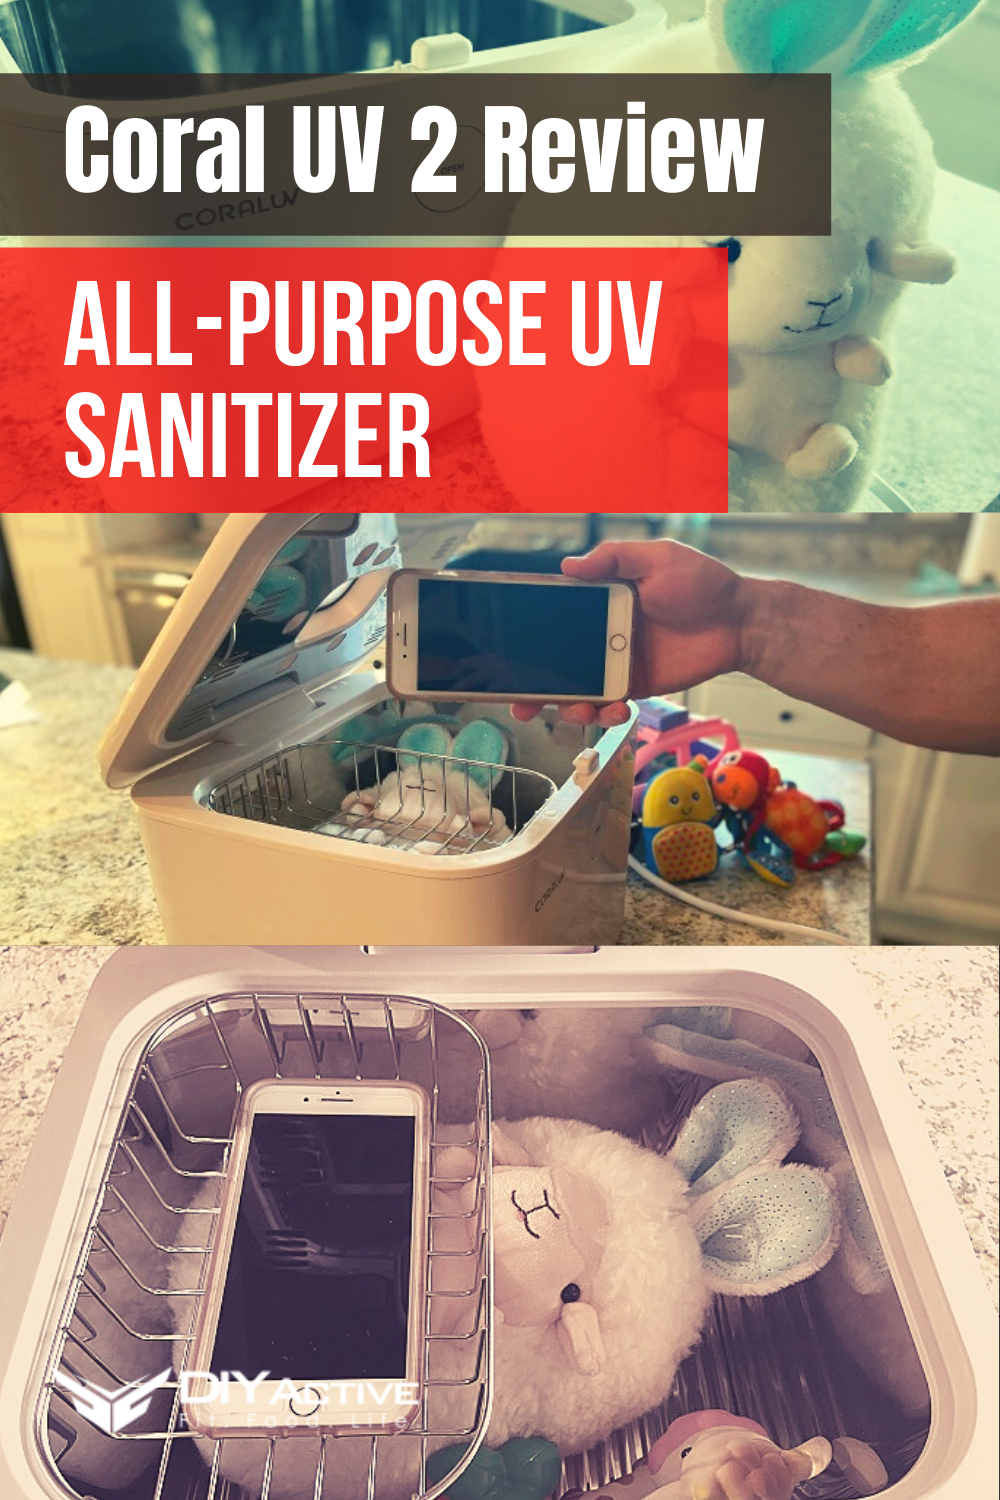 Coral UV 2 Review: All-Purpose UV Sanitizer